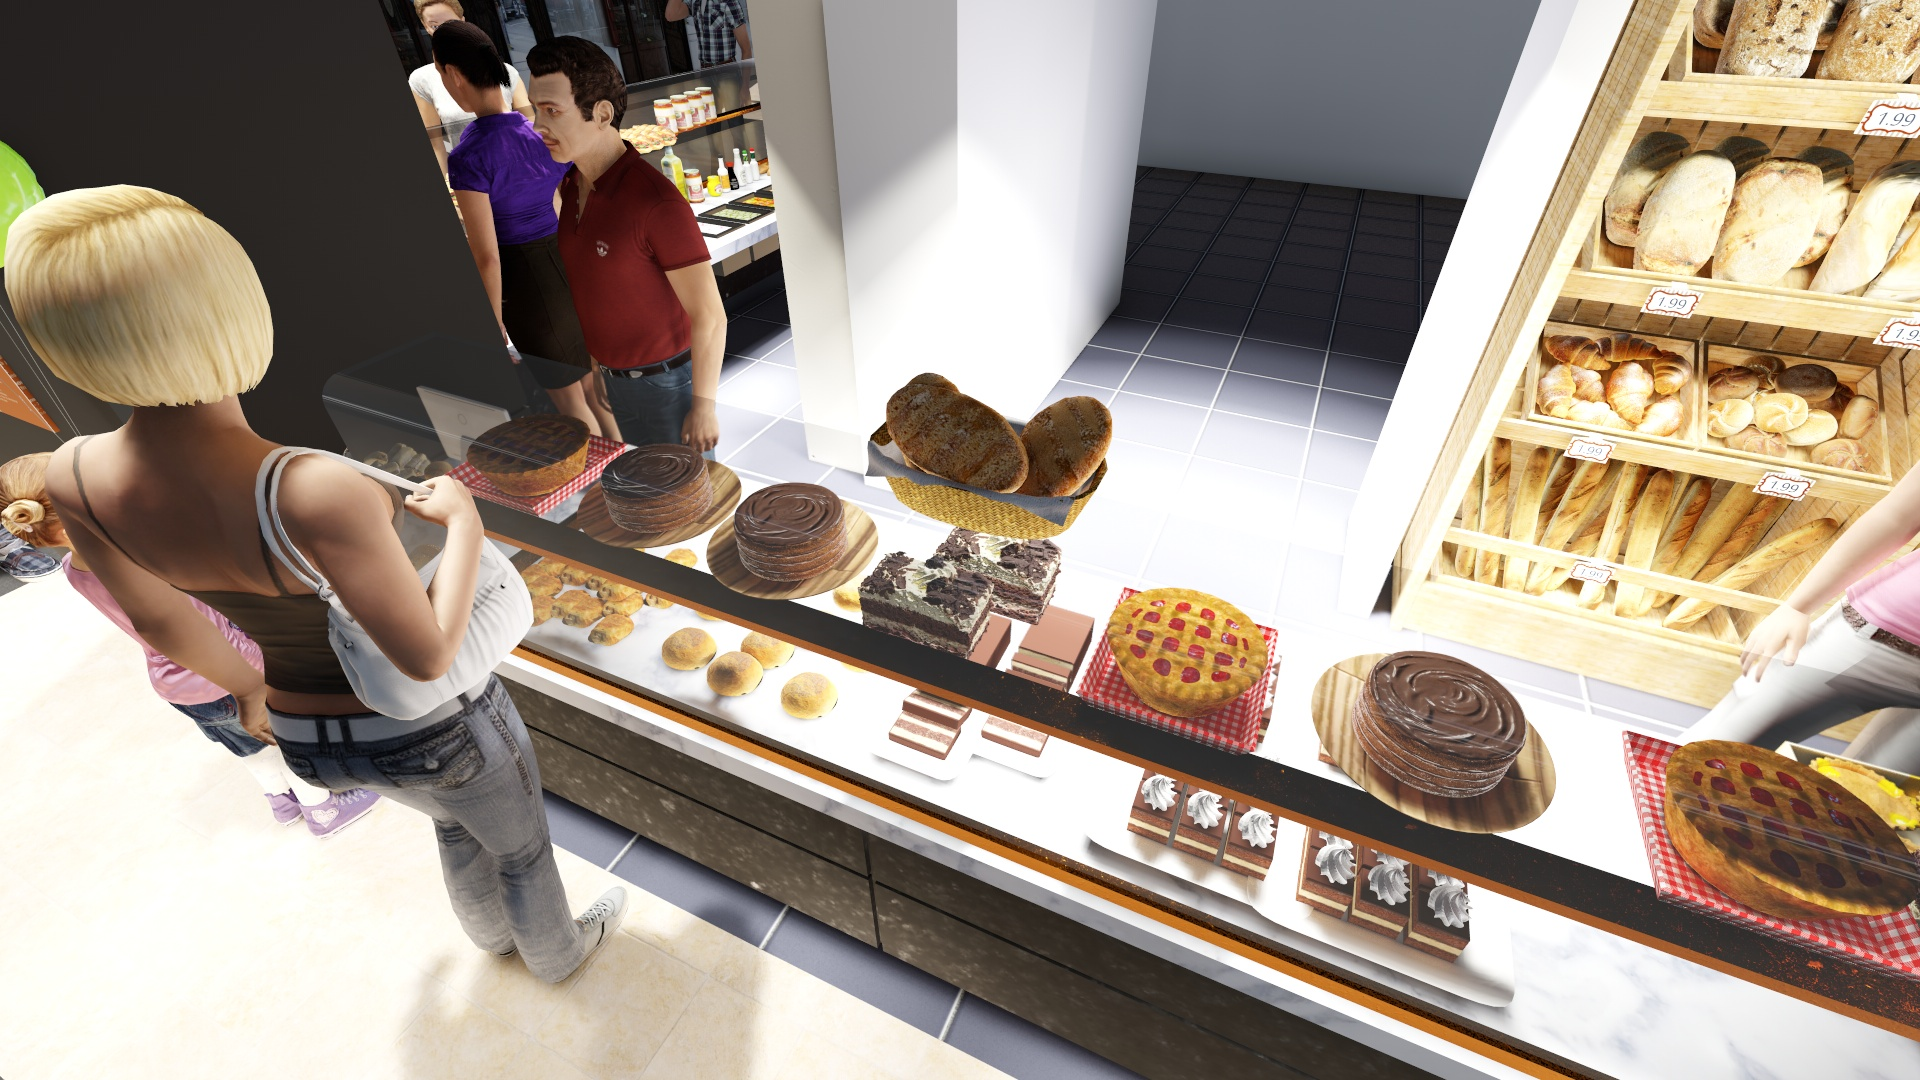 Alpha_Architecture_Boulangerie_Caprice_Or_Image_08